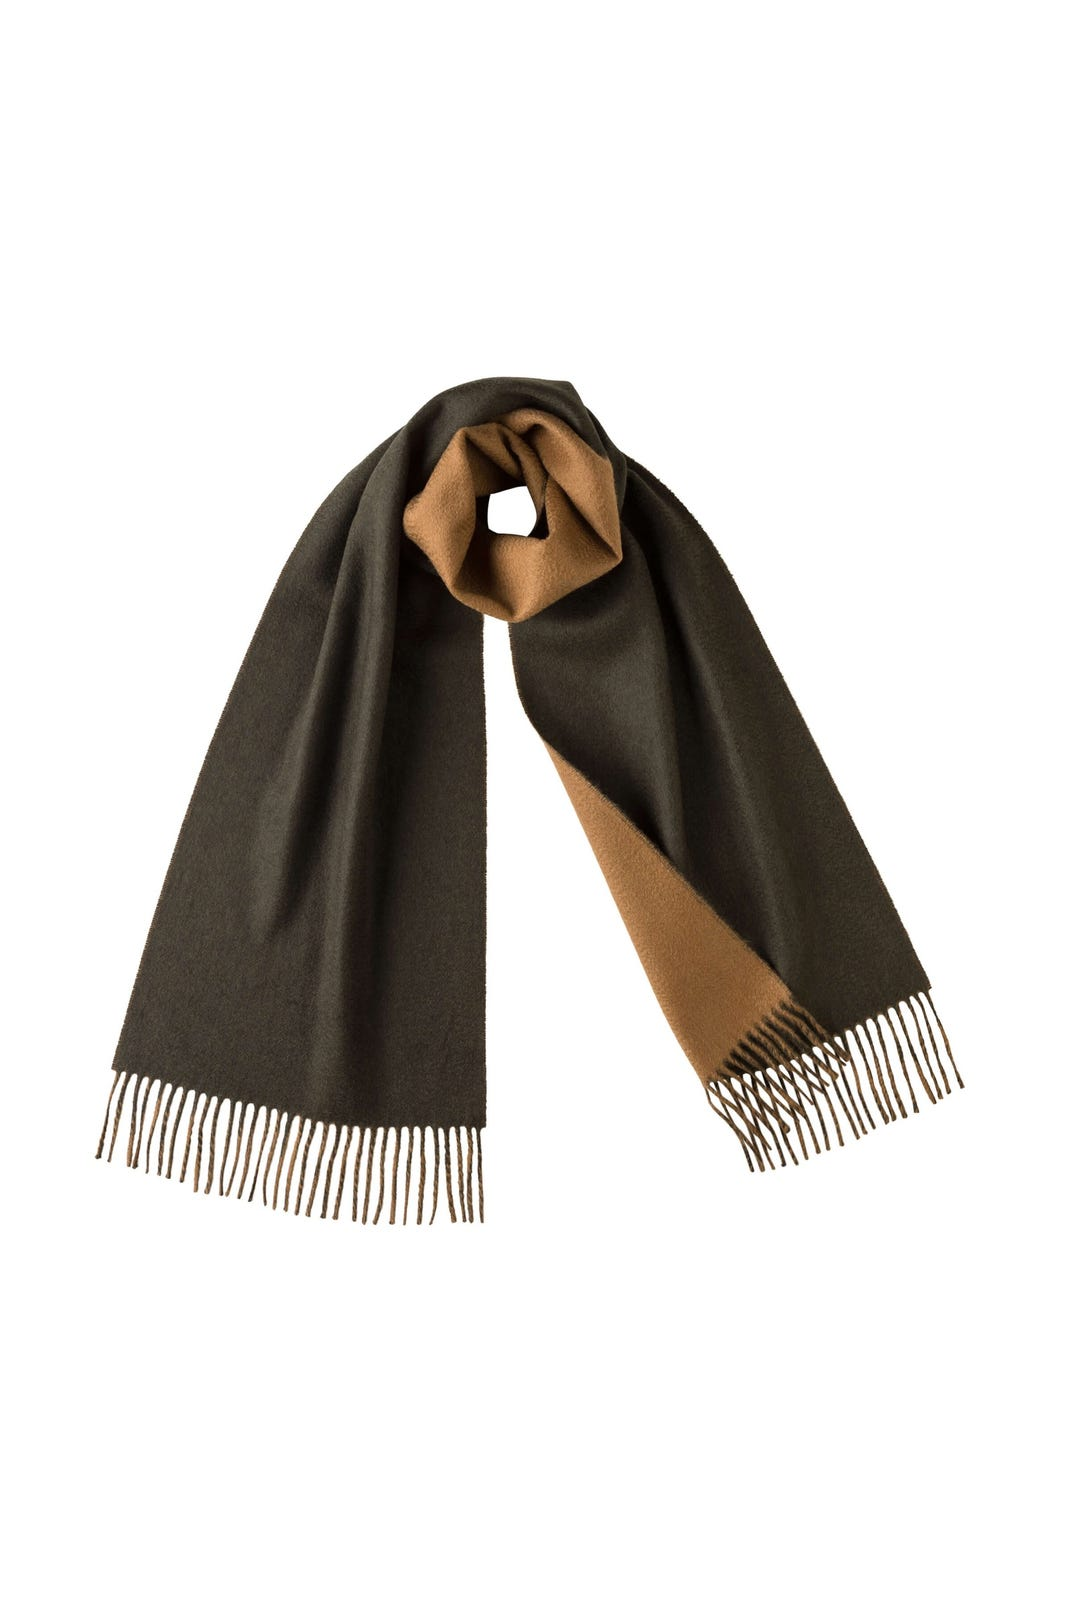 JOHNSTONS OF ELGIN DARK GREEN / CAMEL CASHMERE WOVEN SCARF